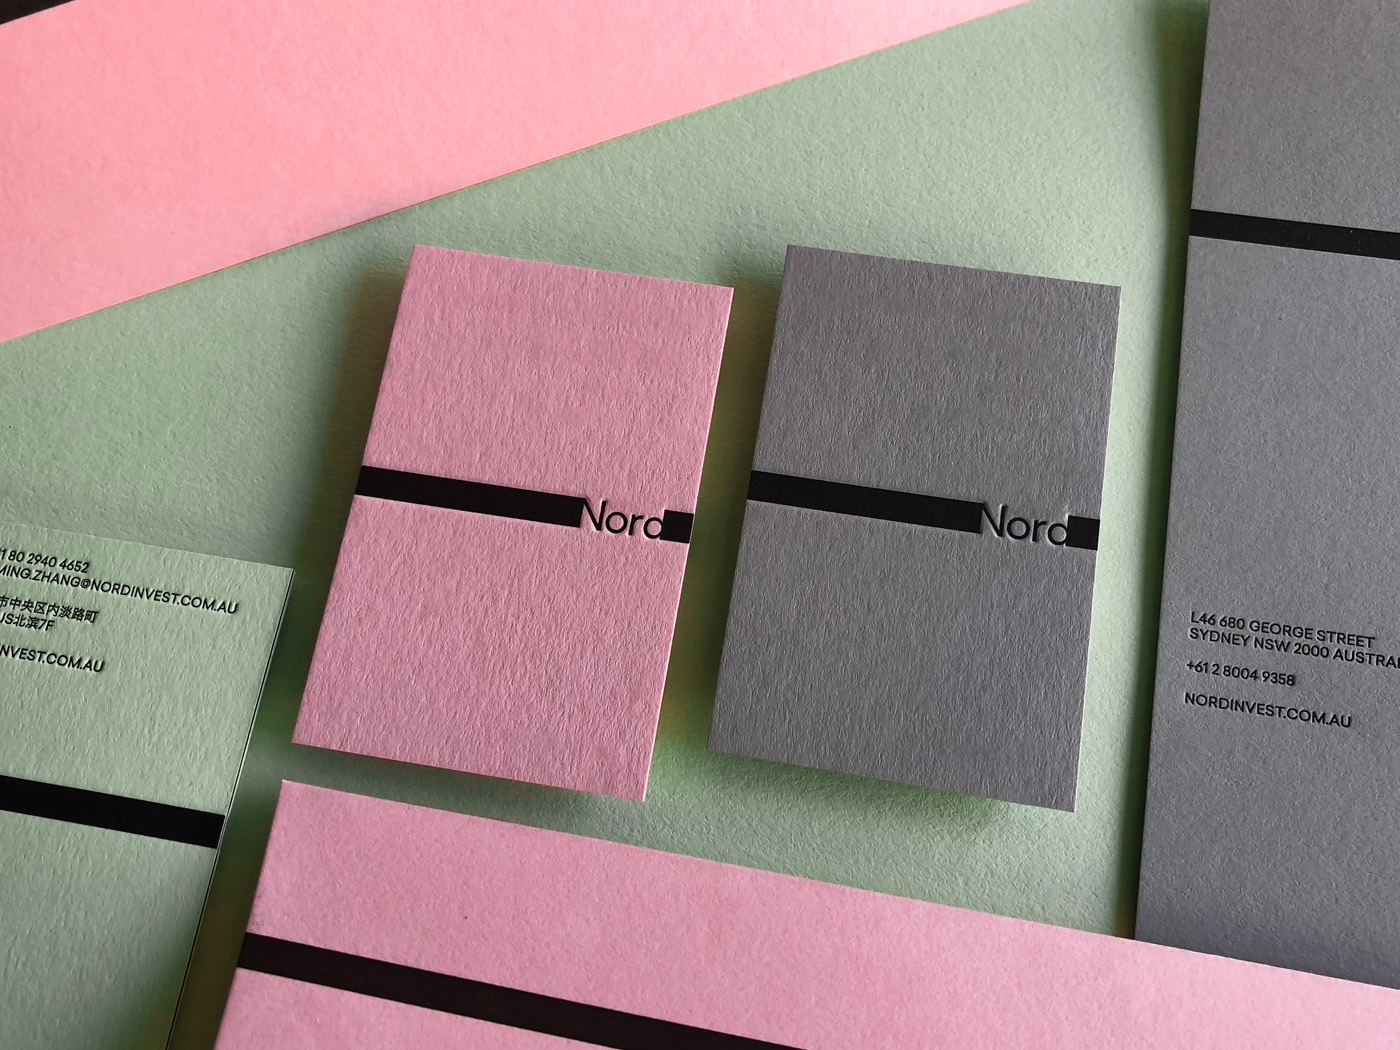 Letterpress Business Cards Letterhead Envelopes for Nord on Colorplan 2